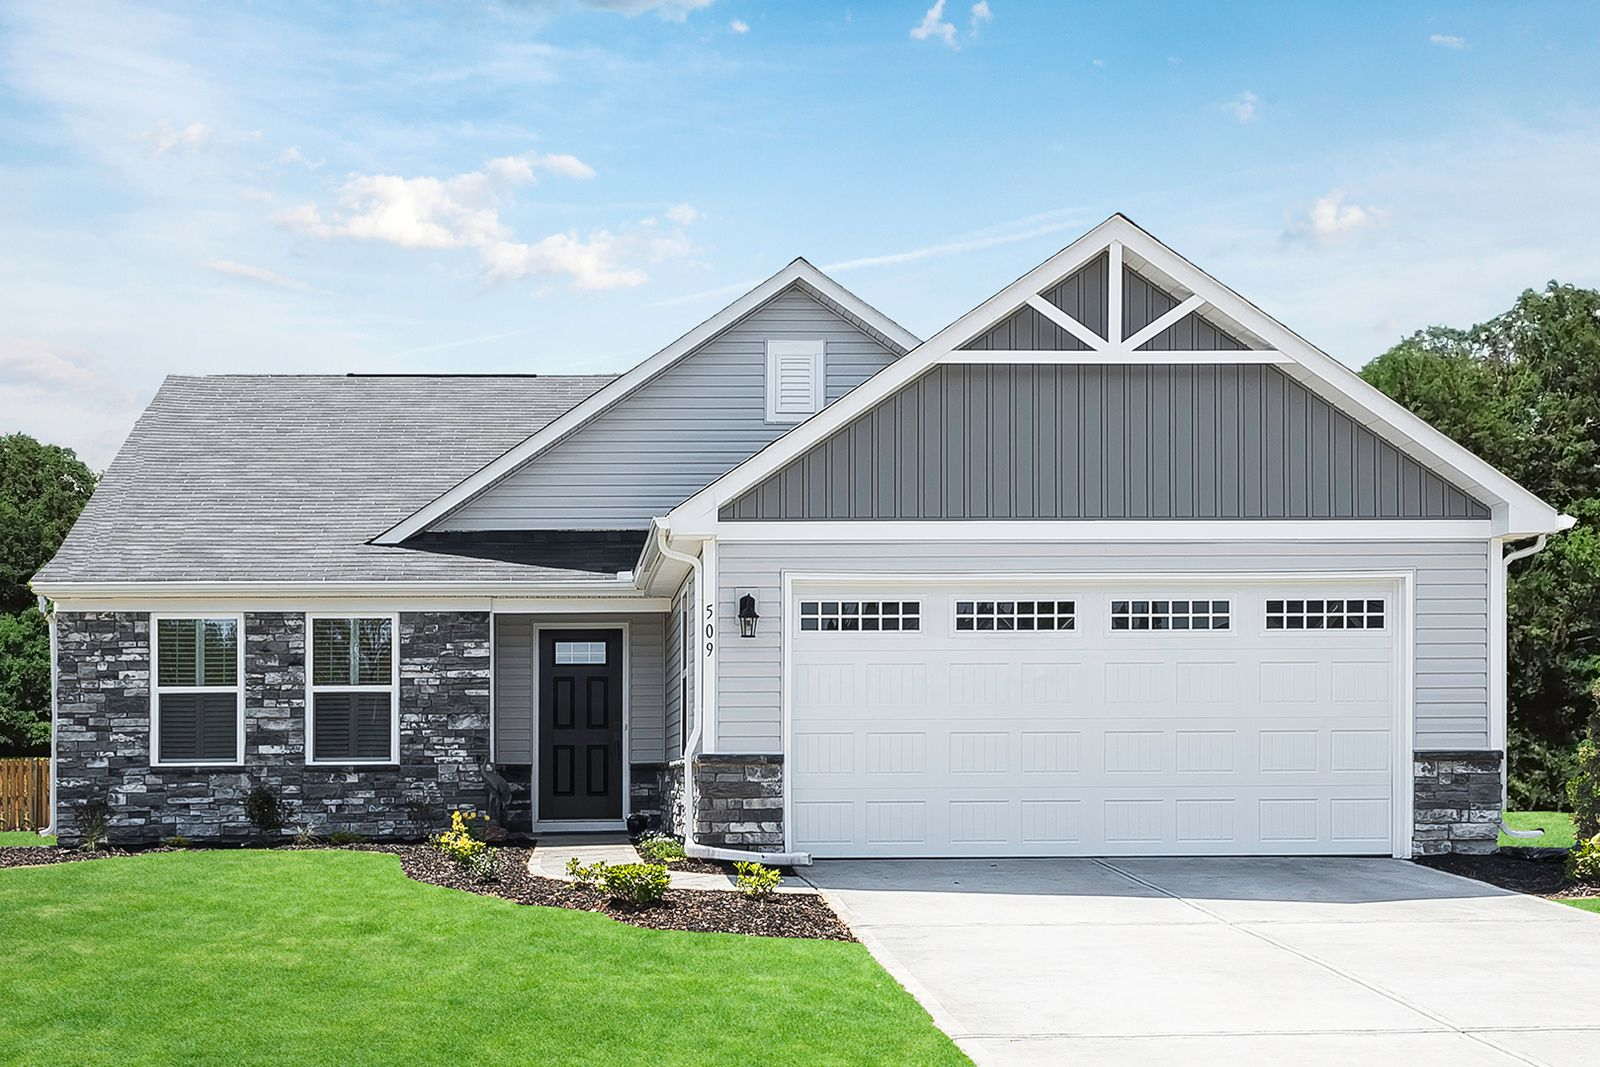 WELCOME HOME TO SHORELAND CROSSING